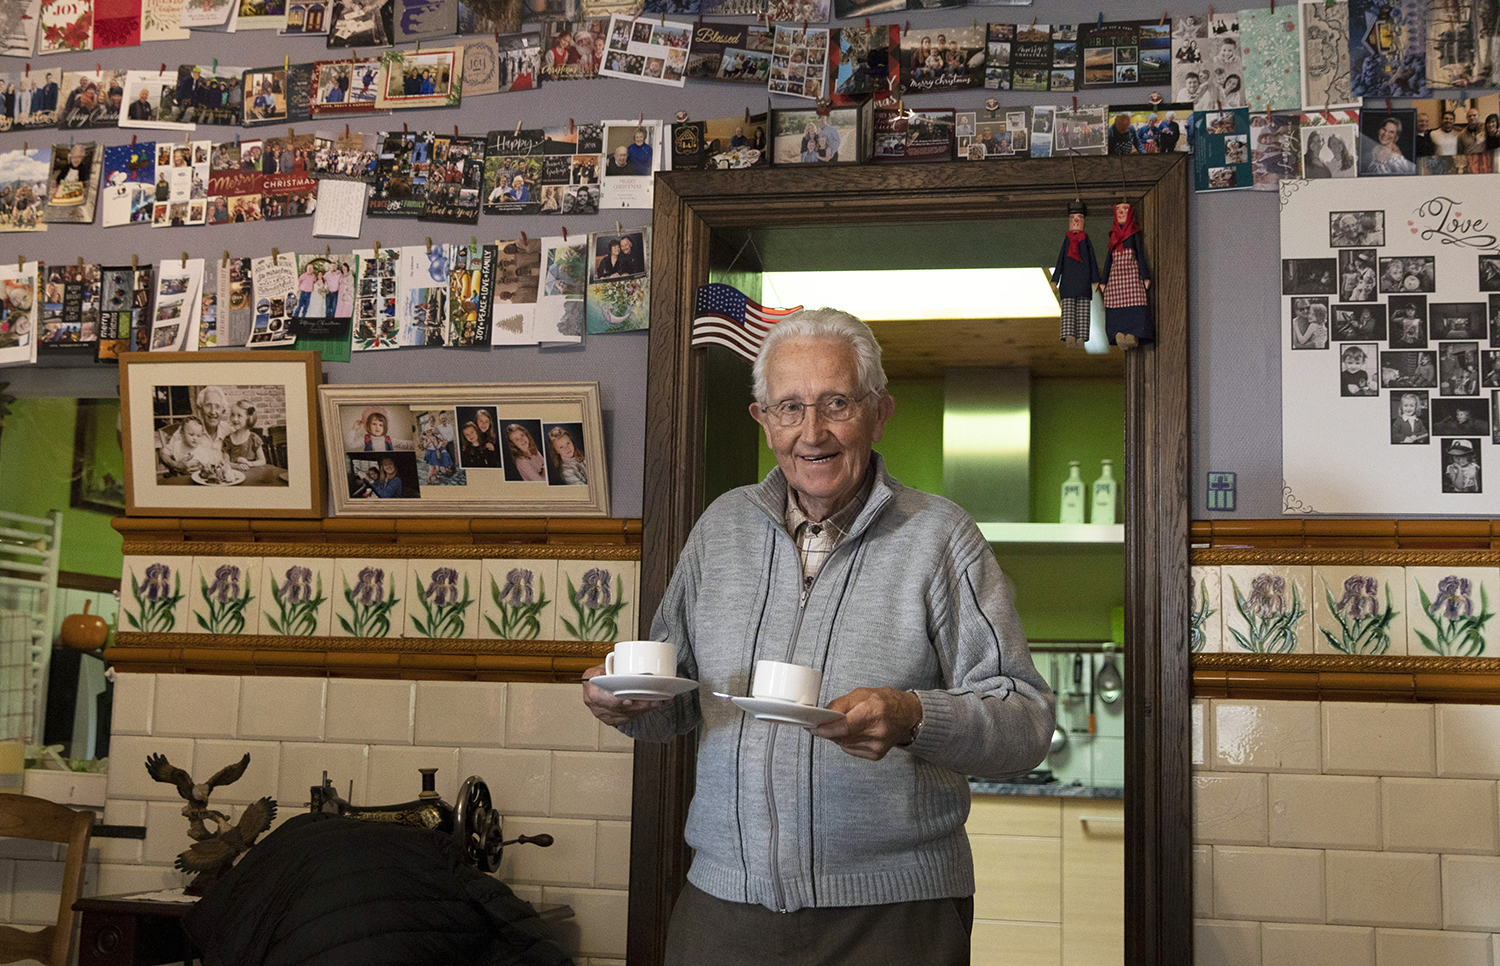 In this photo taken on Thursday, Nov. 7, 2019, Marcel Schmetz serves coffee from the kitchen of his house at the Remember Museum 39-45 in Thimister-Clermont, Belgium. (Virginia Mayo/AP)